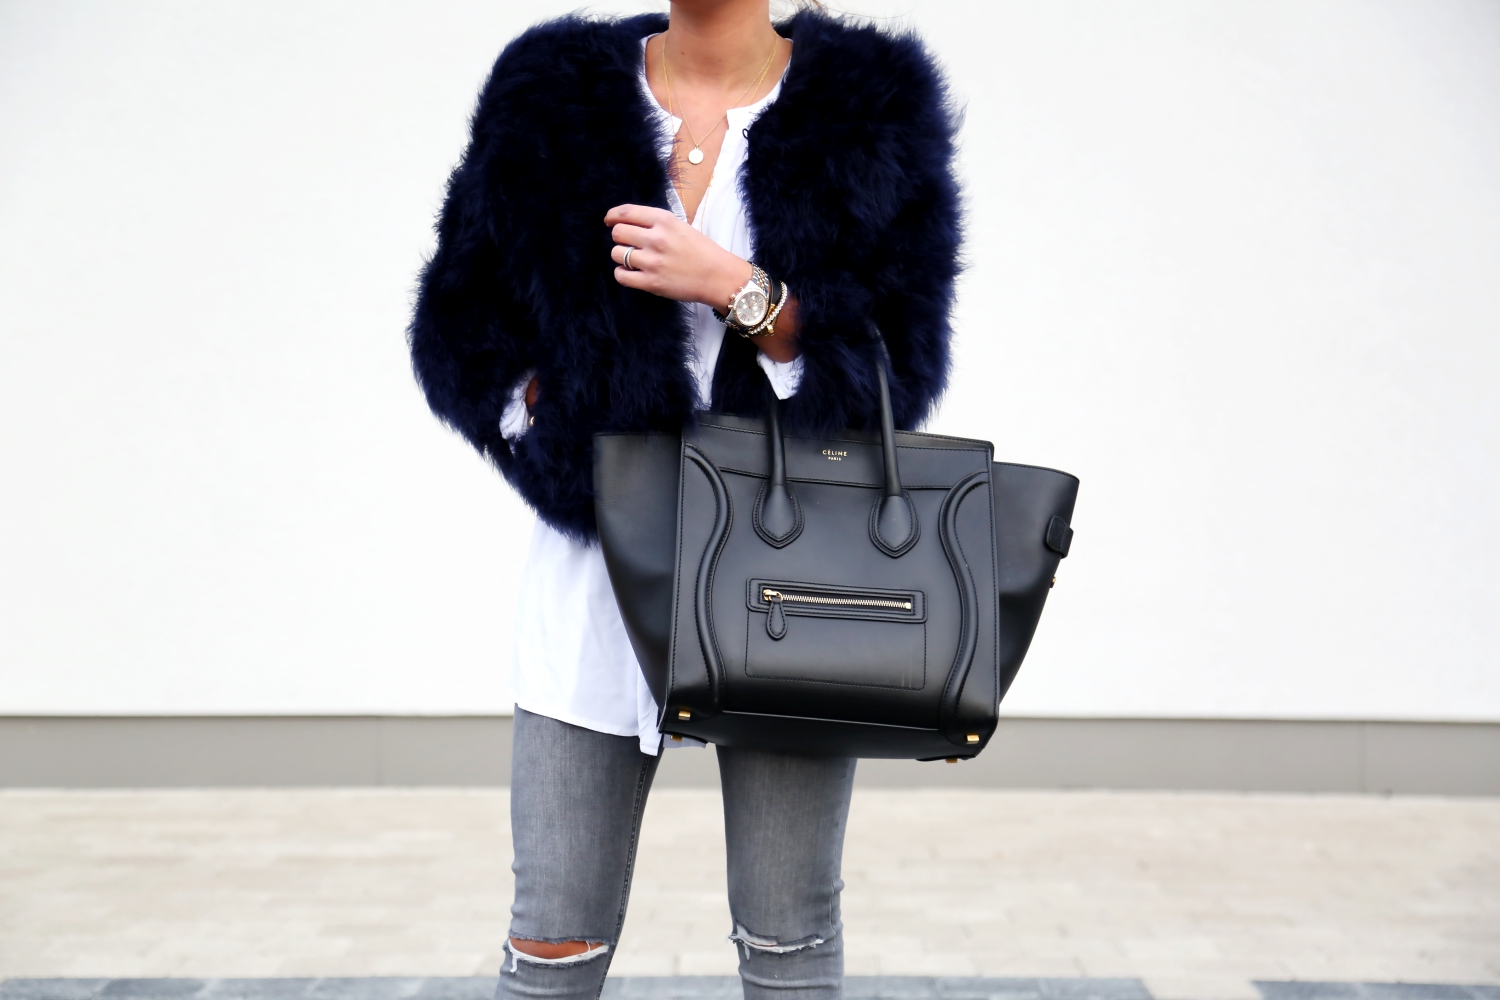 outfit-fall-autmn-feather-jacket-celine-luggage-bag